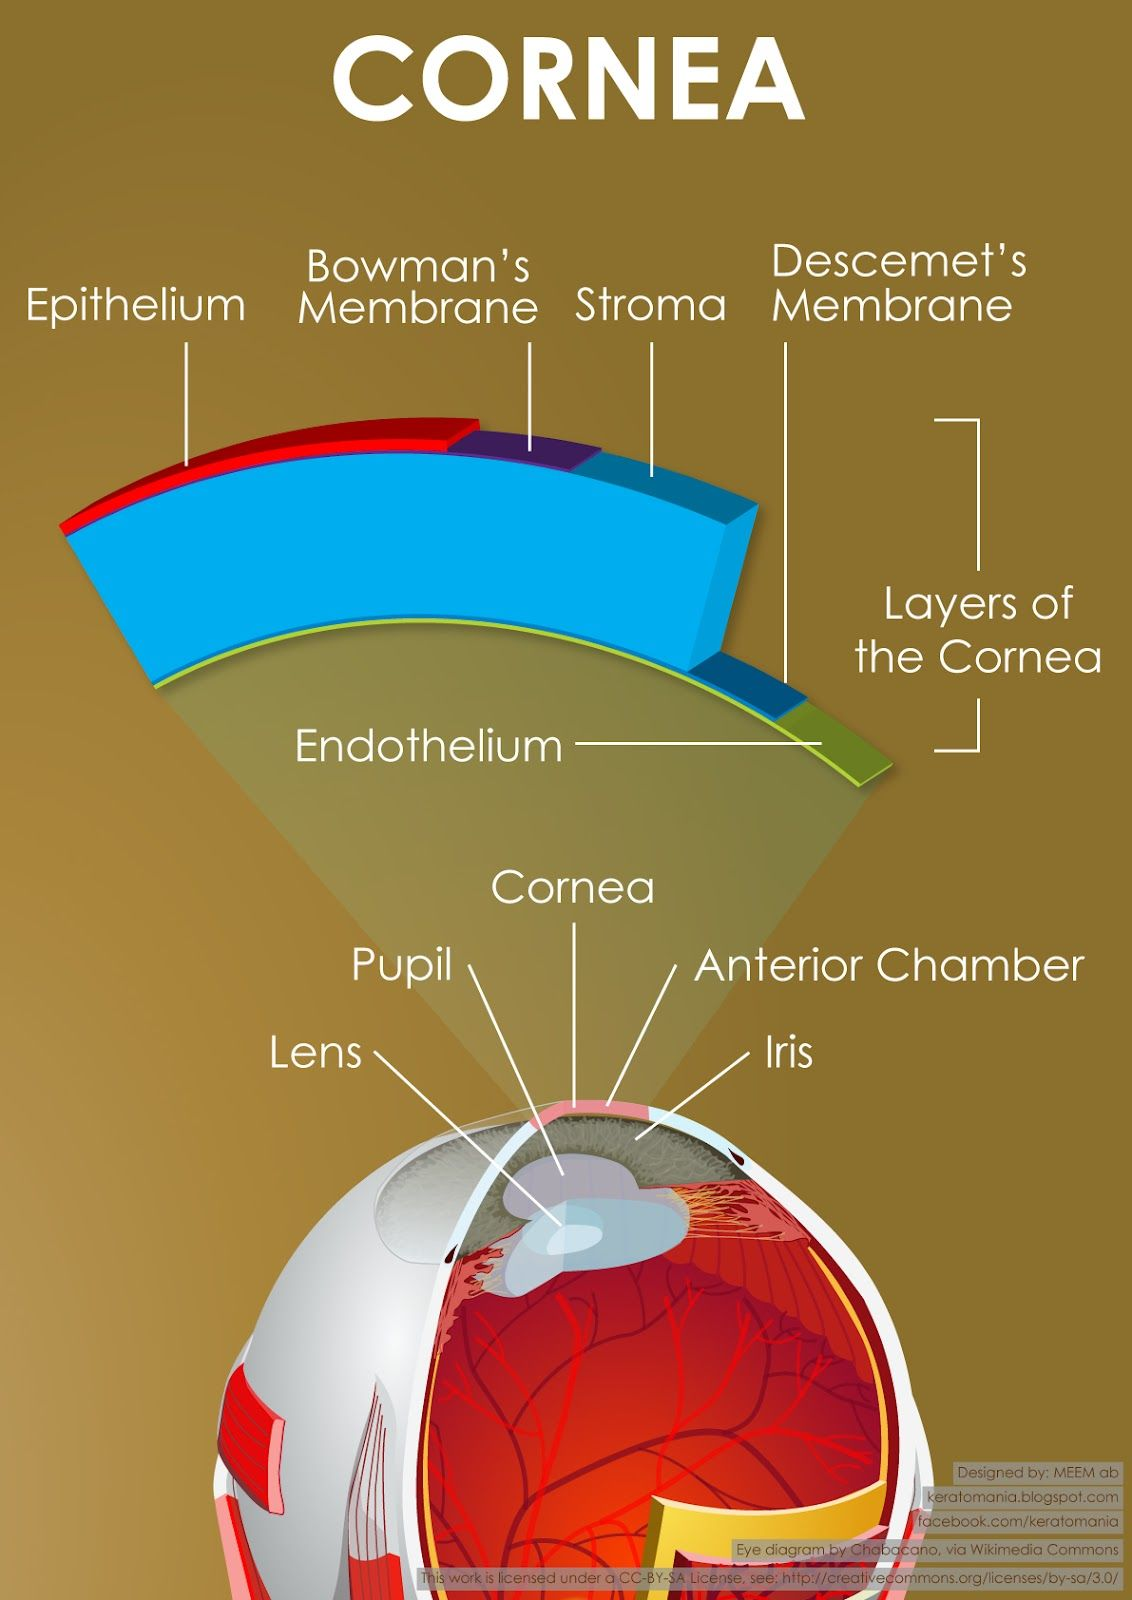 canine eye diagram led light strip wiring a showing part of the cornea and its layers